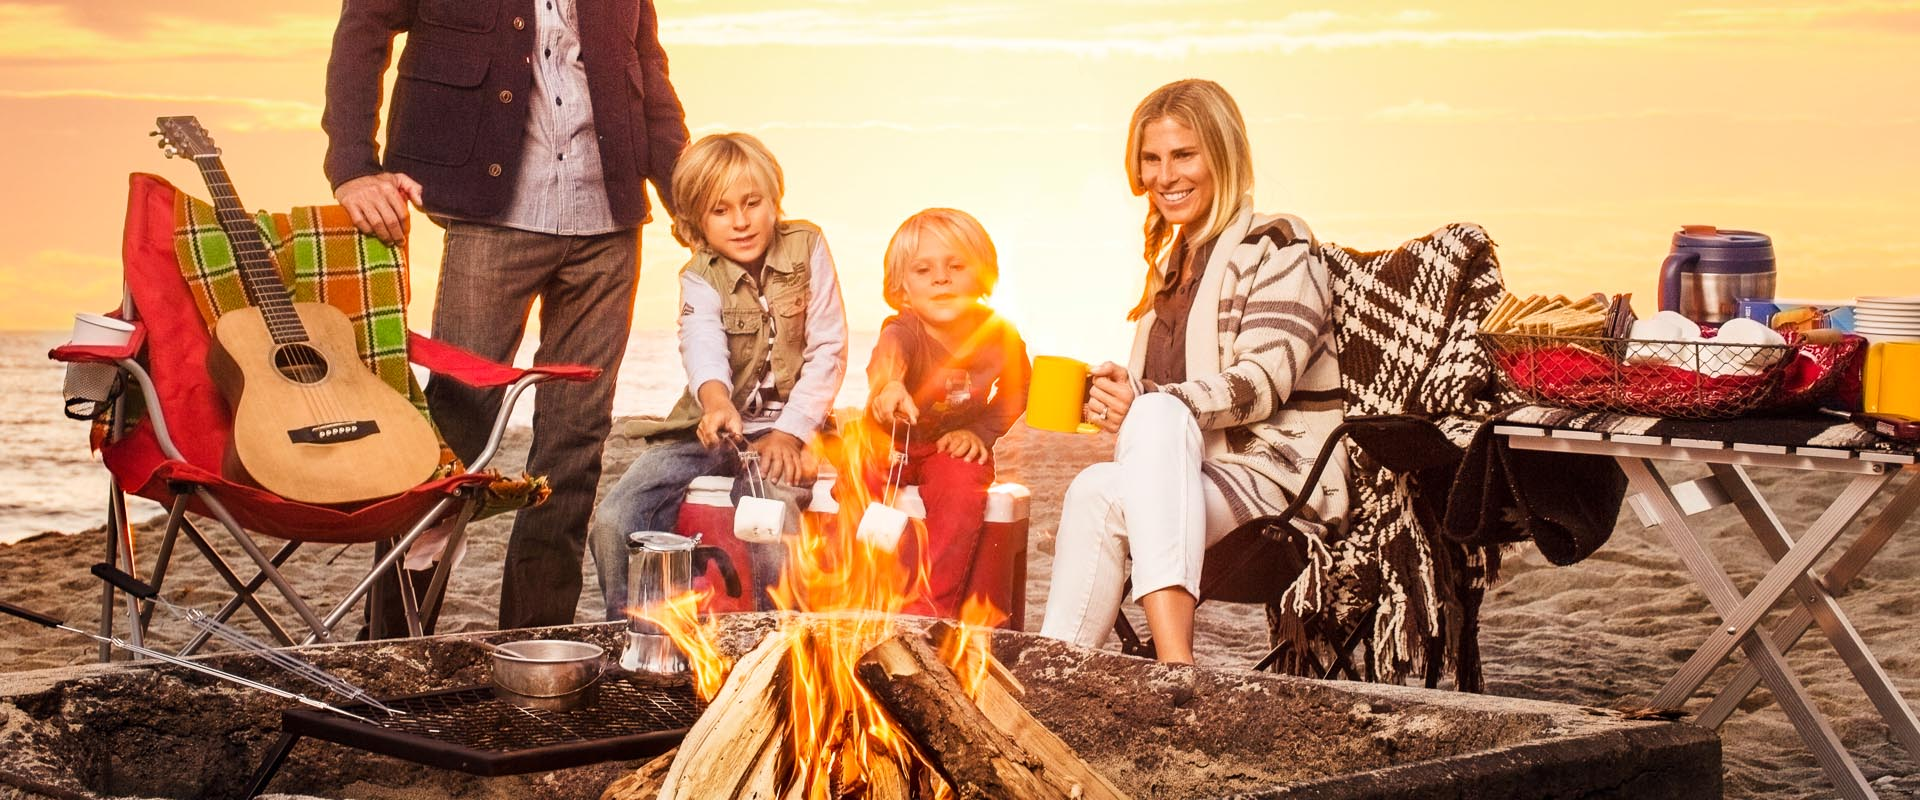 2307_Commercial_photographer__family_beach_smores_DavidTosti 2014